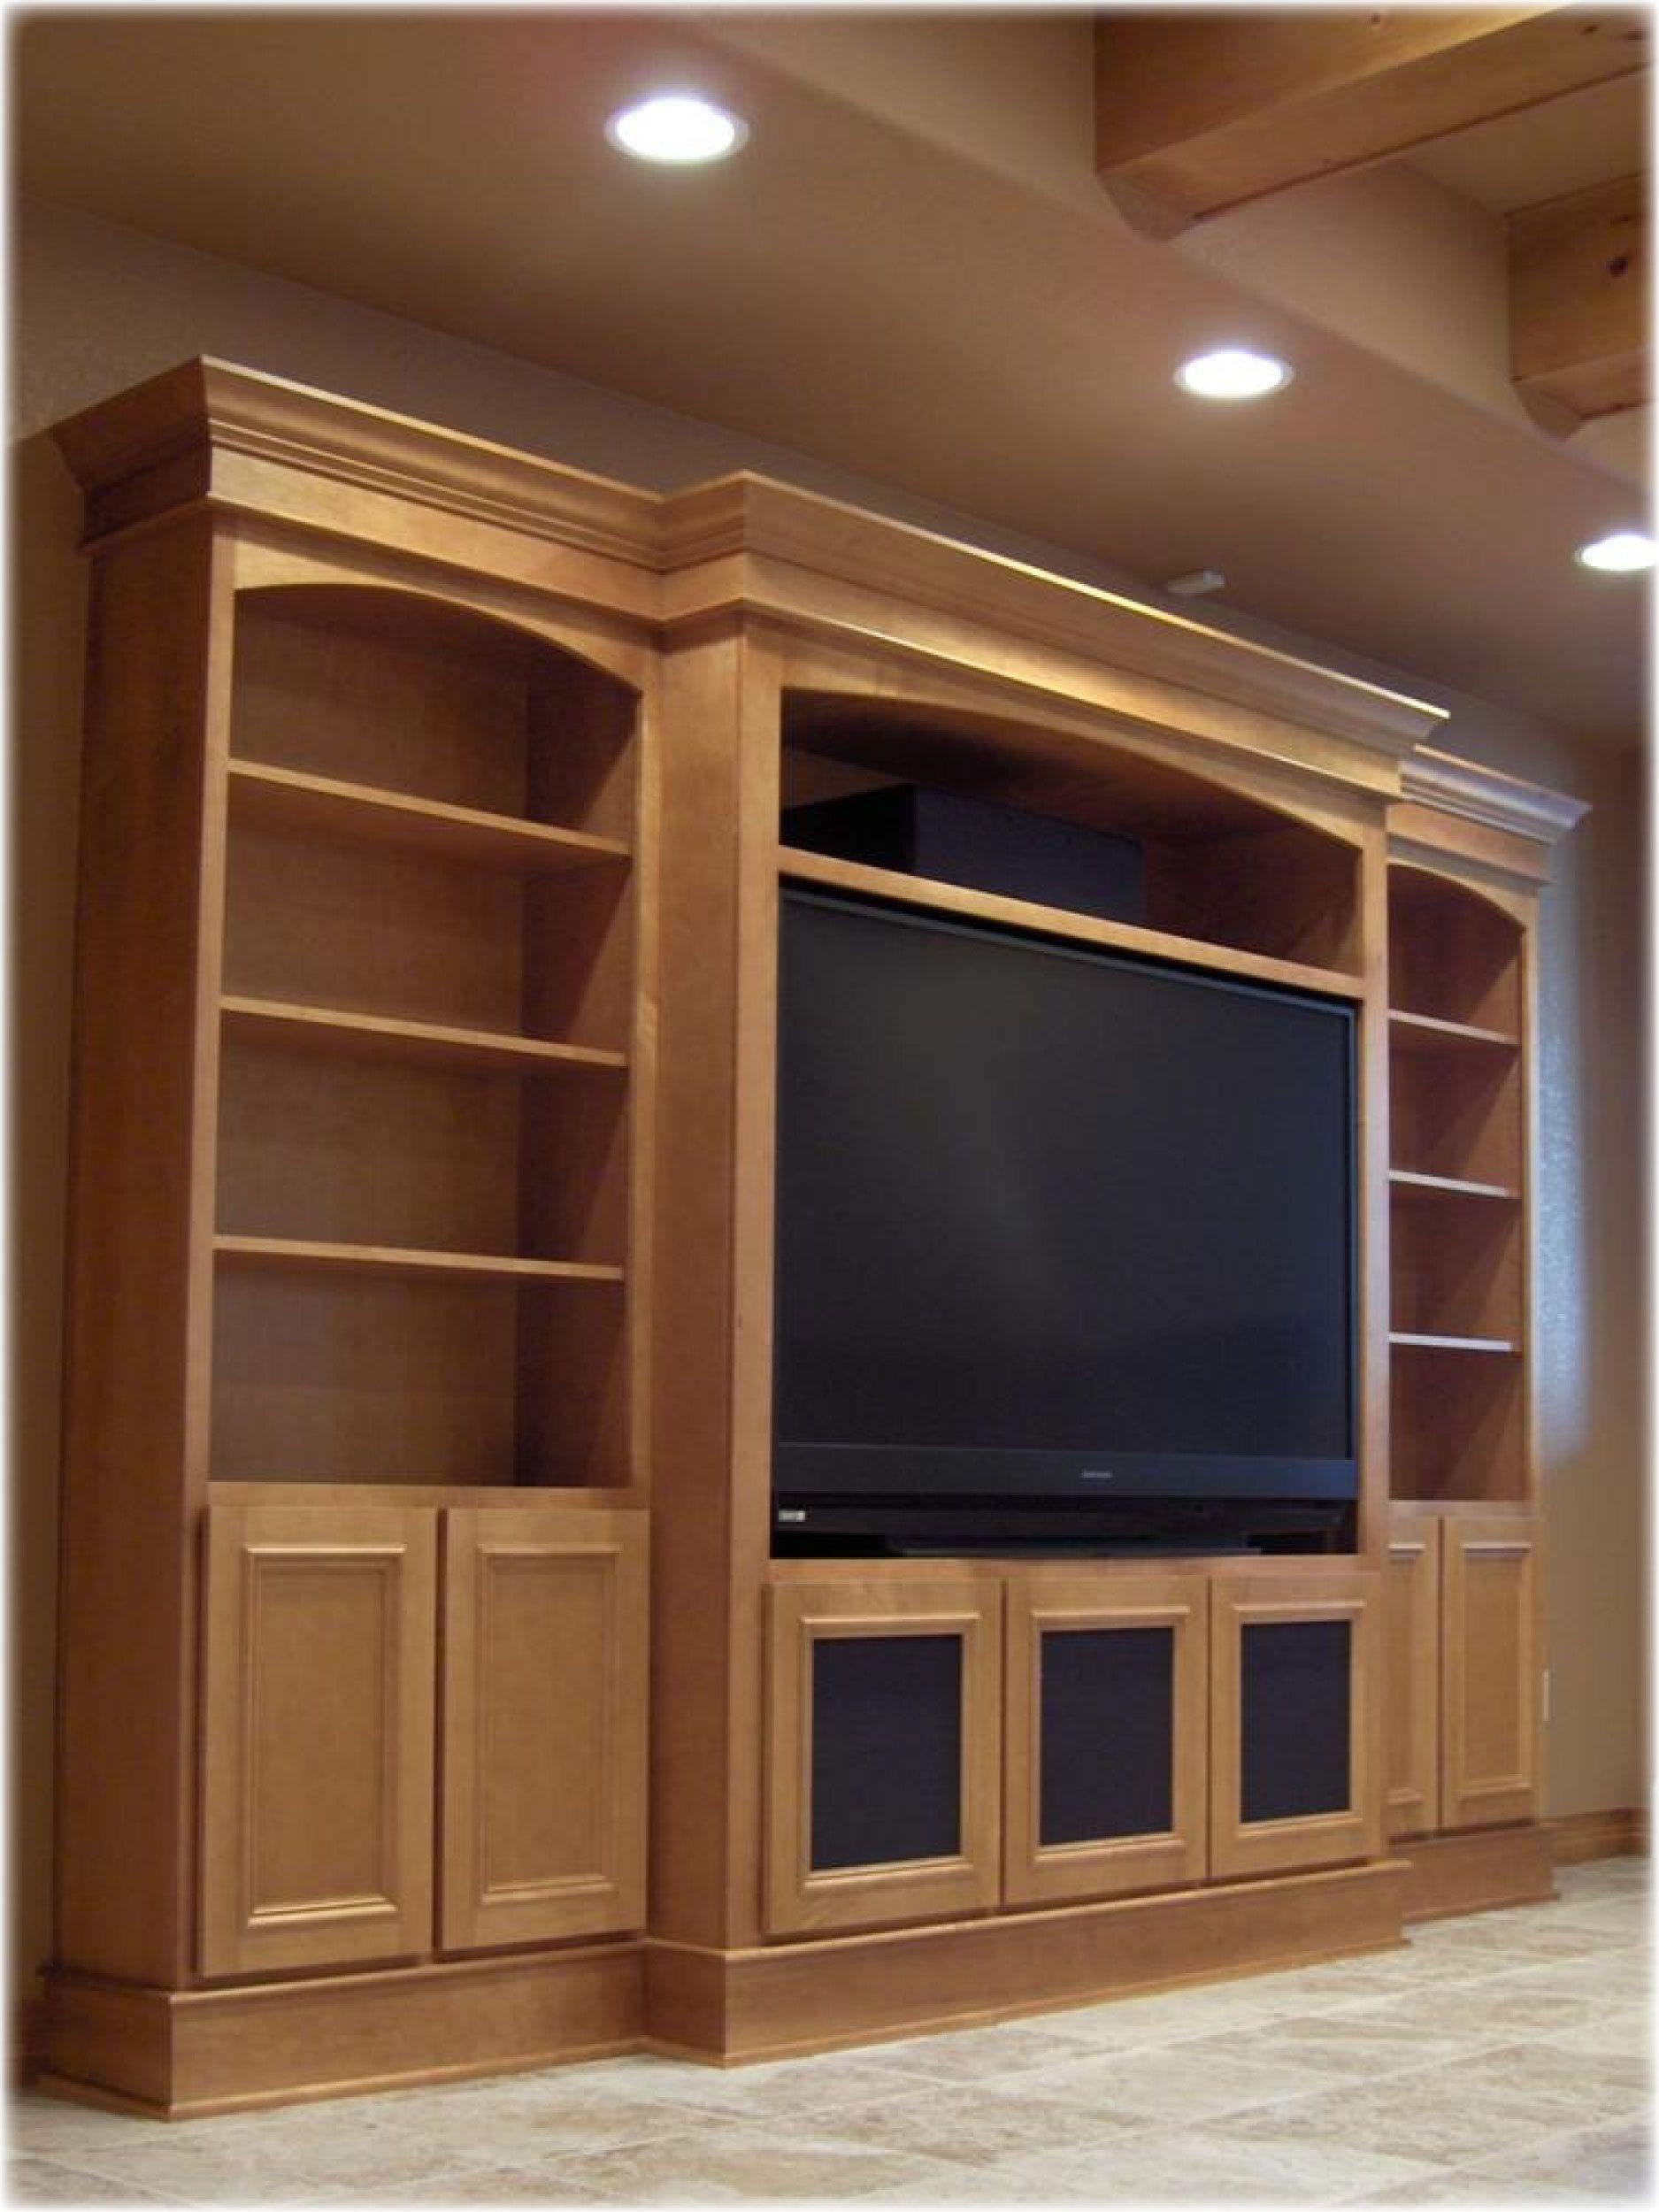 Built in entertainment centers custom built entertainment centers home sweet home muebles - Sweet home muebles ...